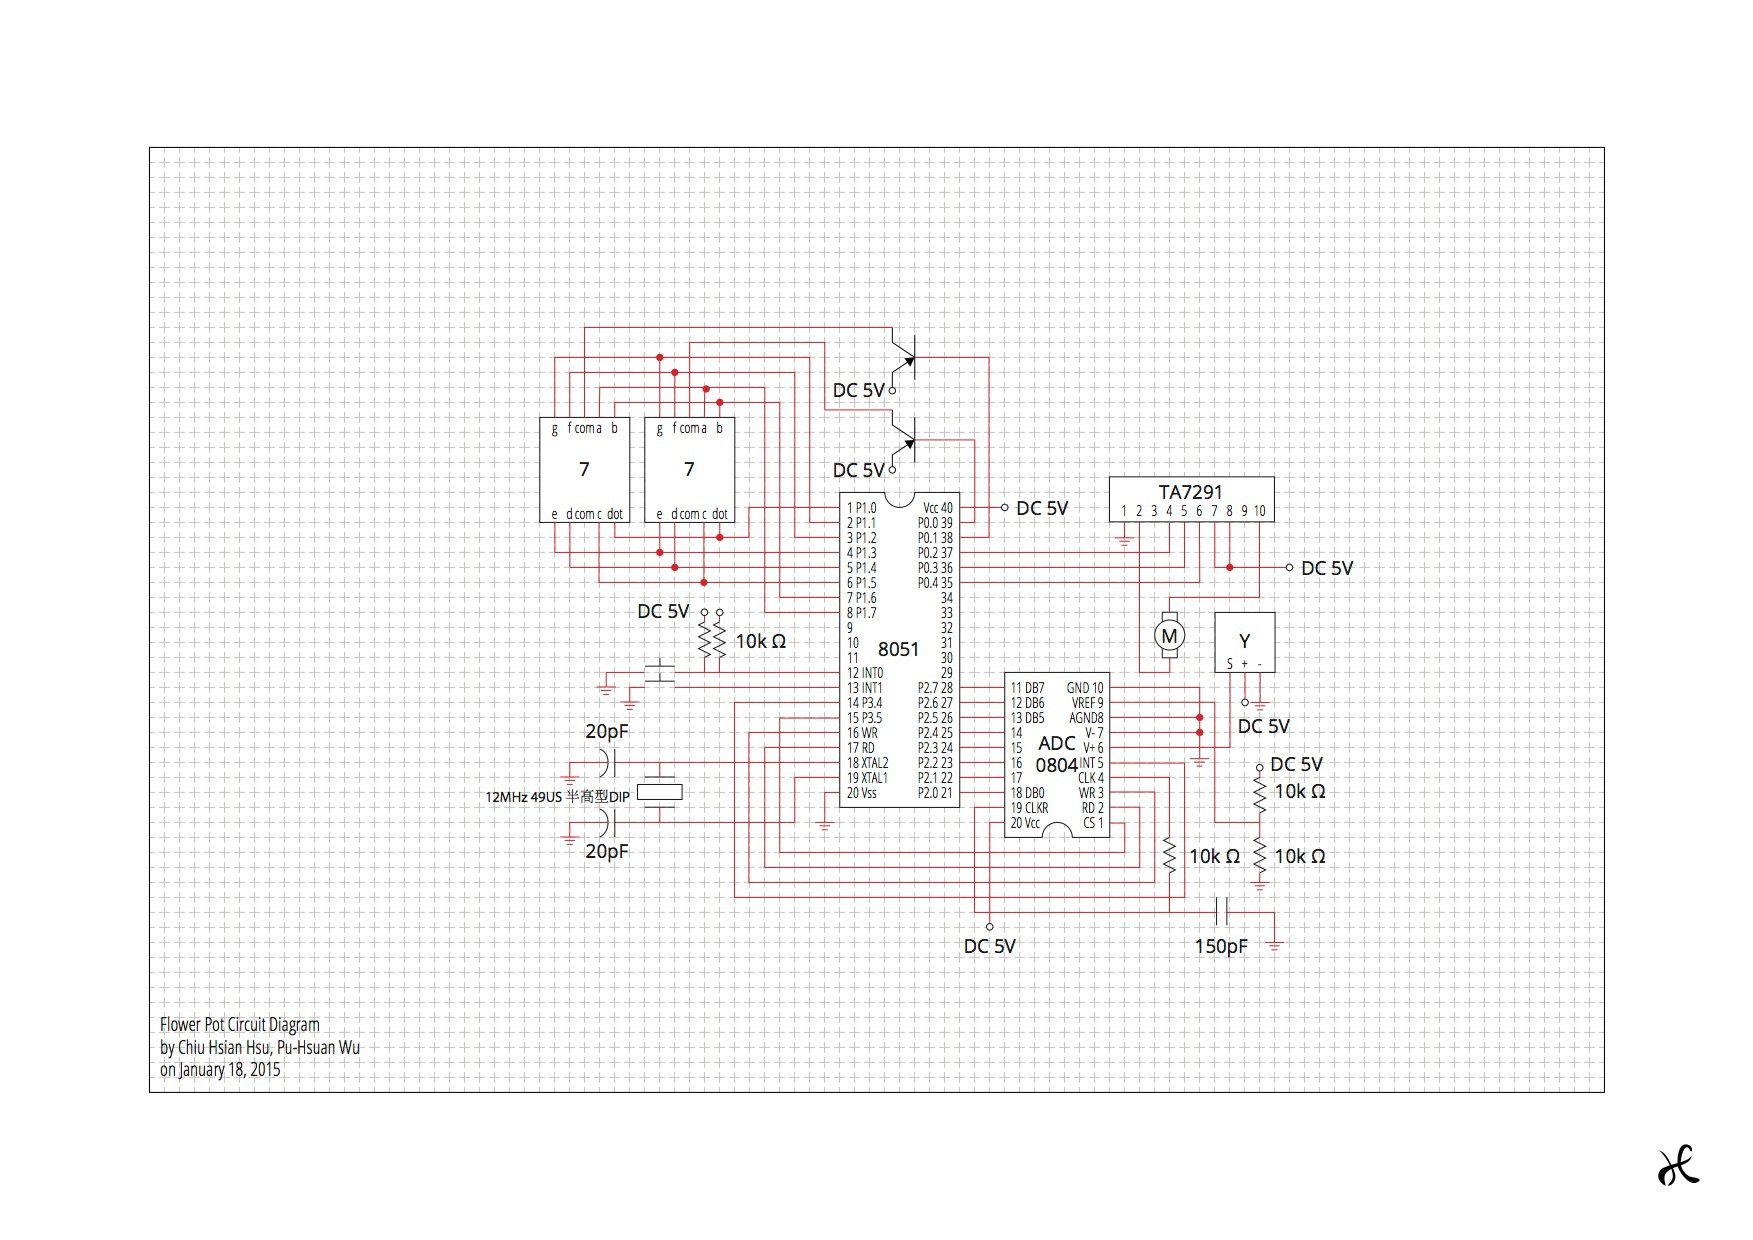 pu hsuan wu smart flower pot LED Floodlight Wiring-Diagram figure 4 the circuit diagram for smart flower pot the labels are abbreviated y is moisture sensor and 7 is 7 segment led